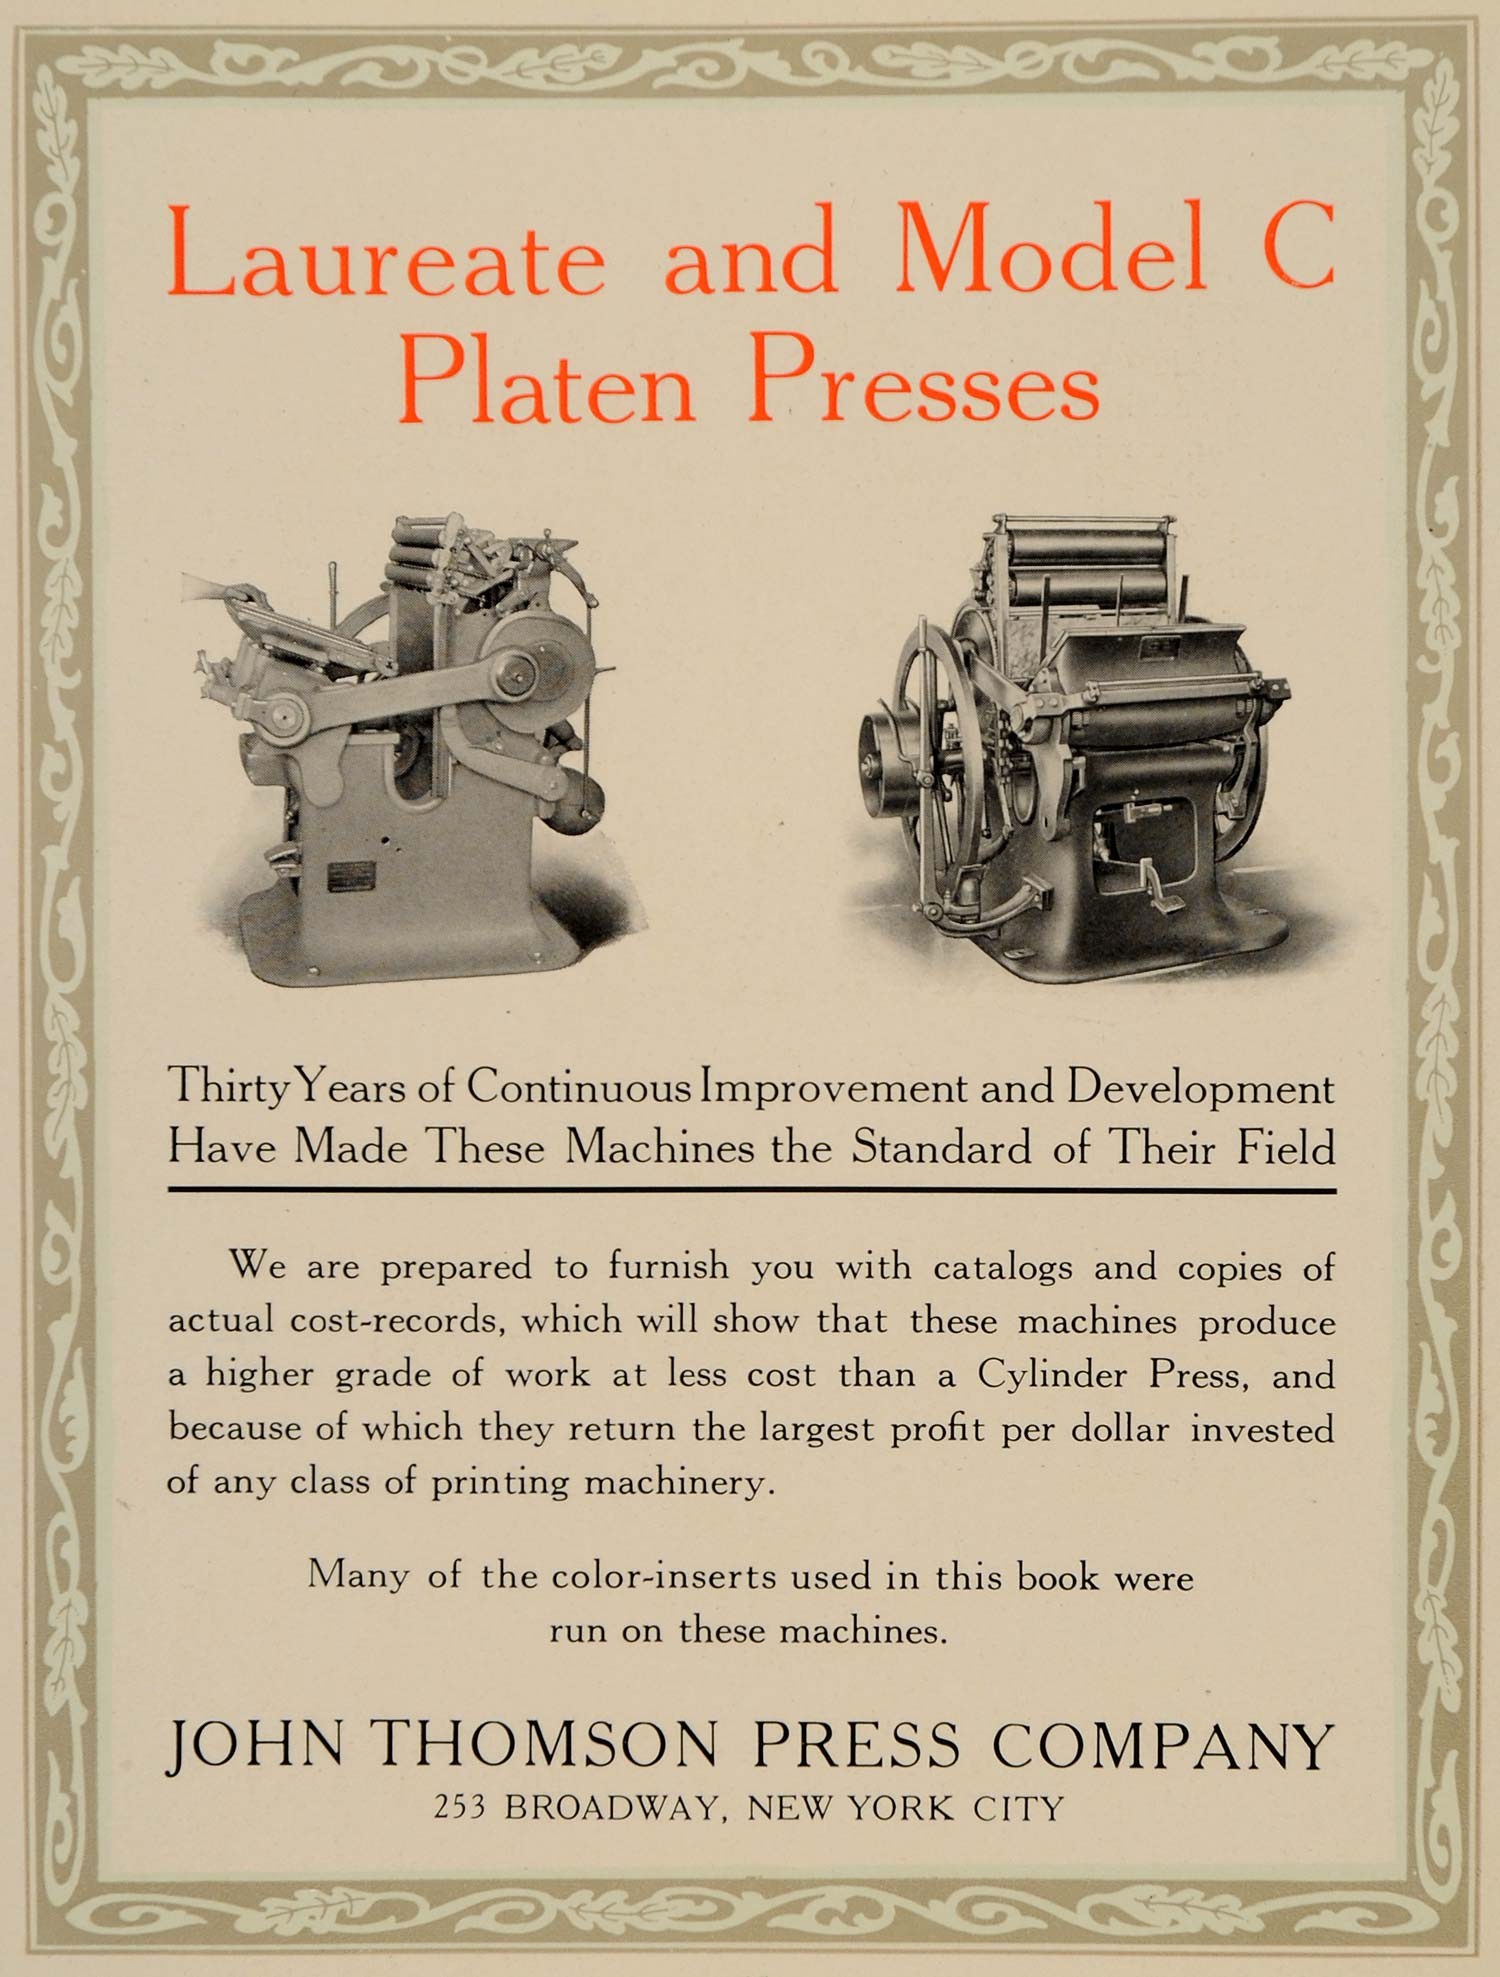 1913 Ad Vintage Laureate Model C Platen Printing Press - ORIGINAL GAC1